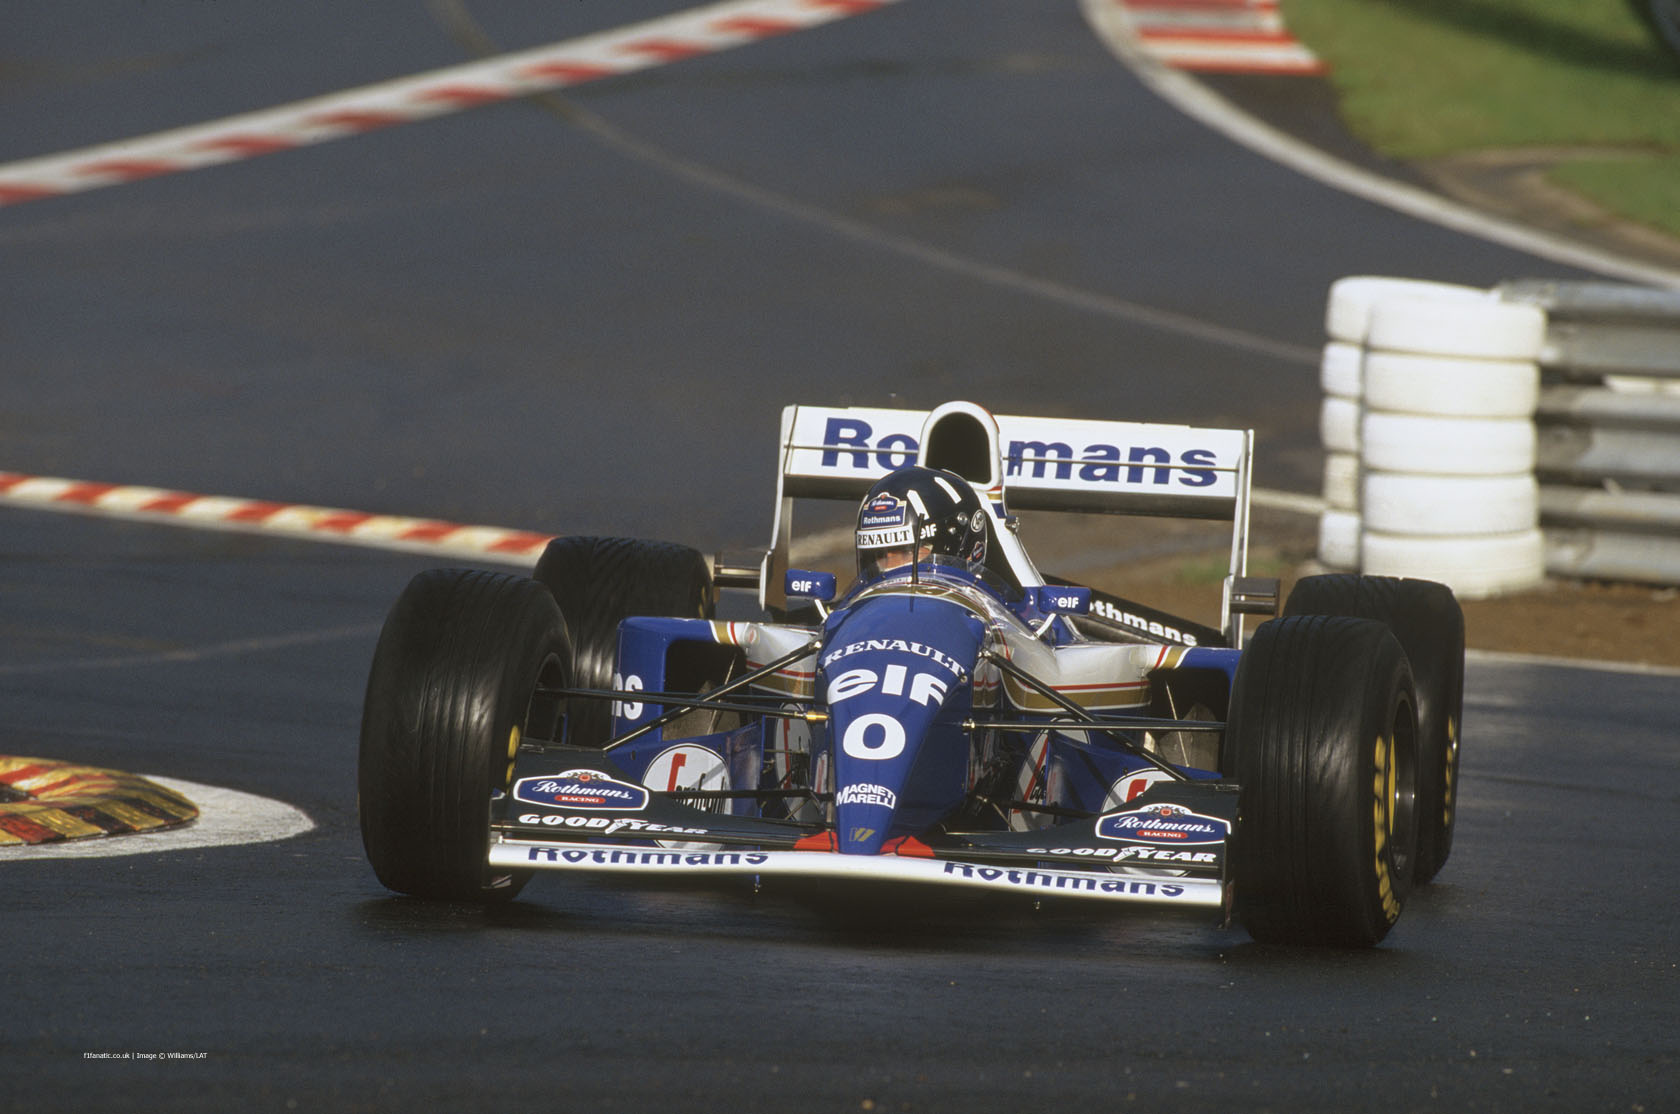 Damon Hill, Williams-Renault FW16, Spa-Francorchamps, 1994